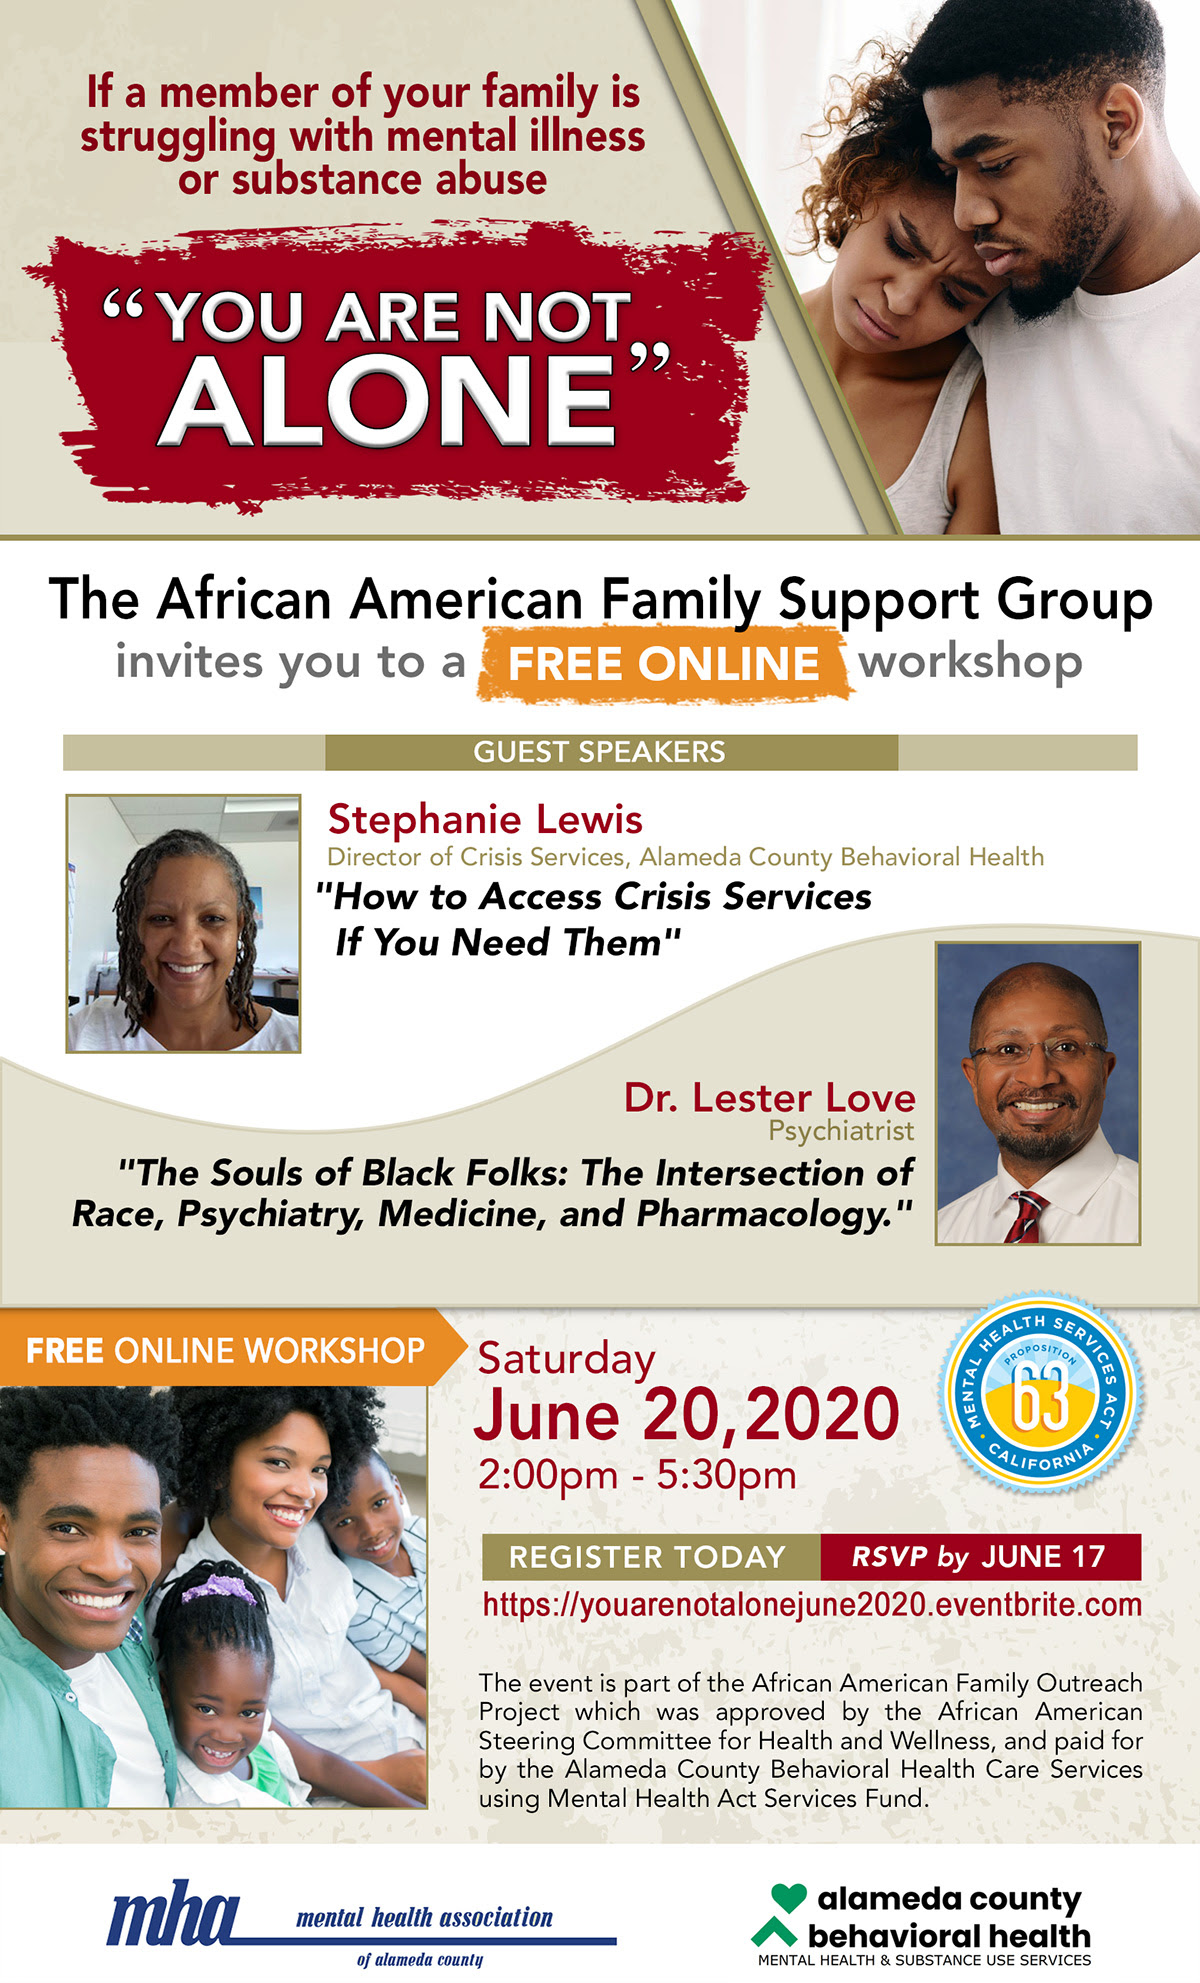 You Are Not Alone - African American Family Support Group